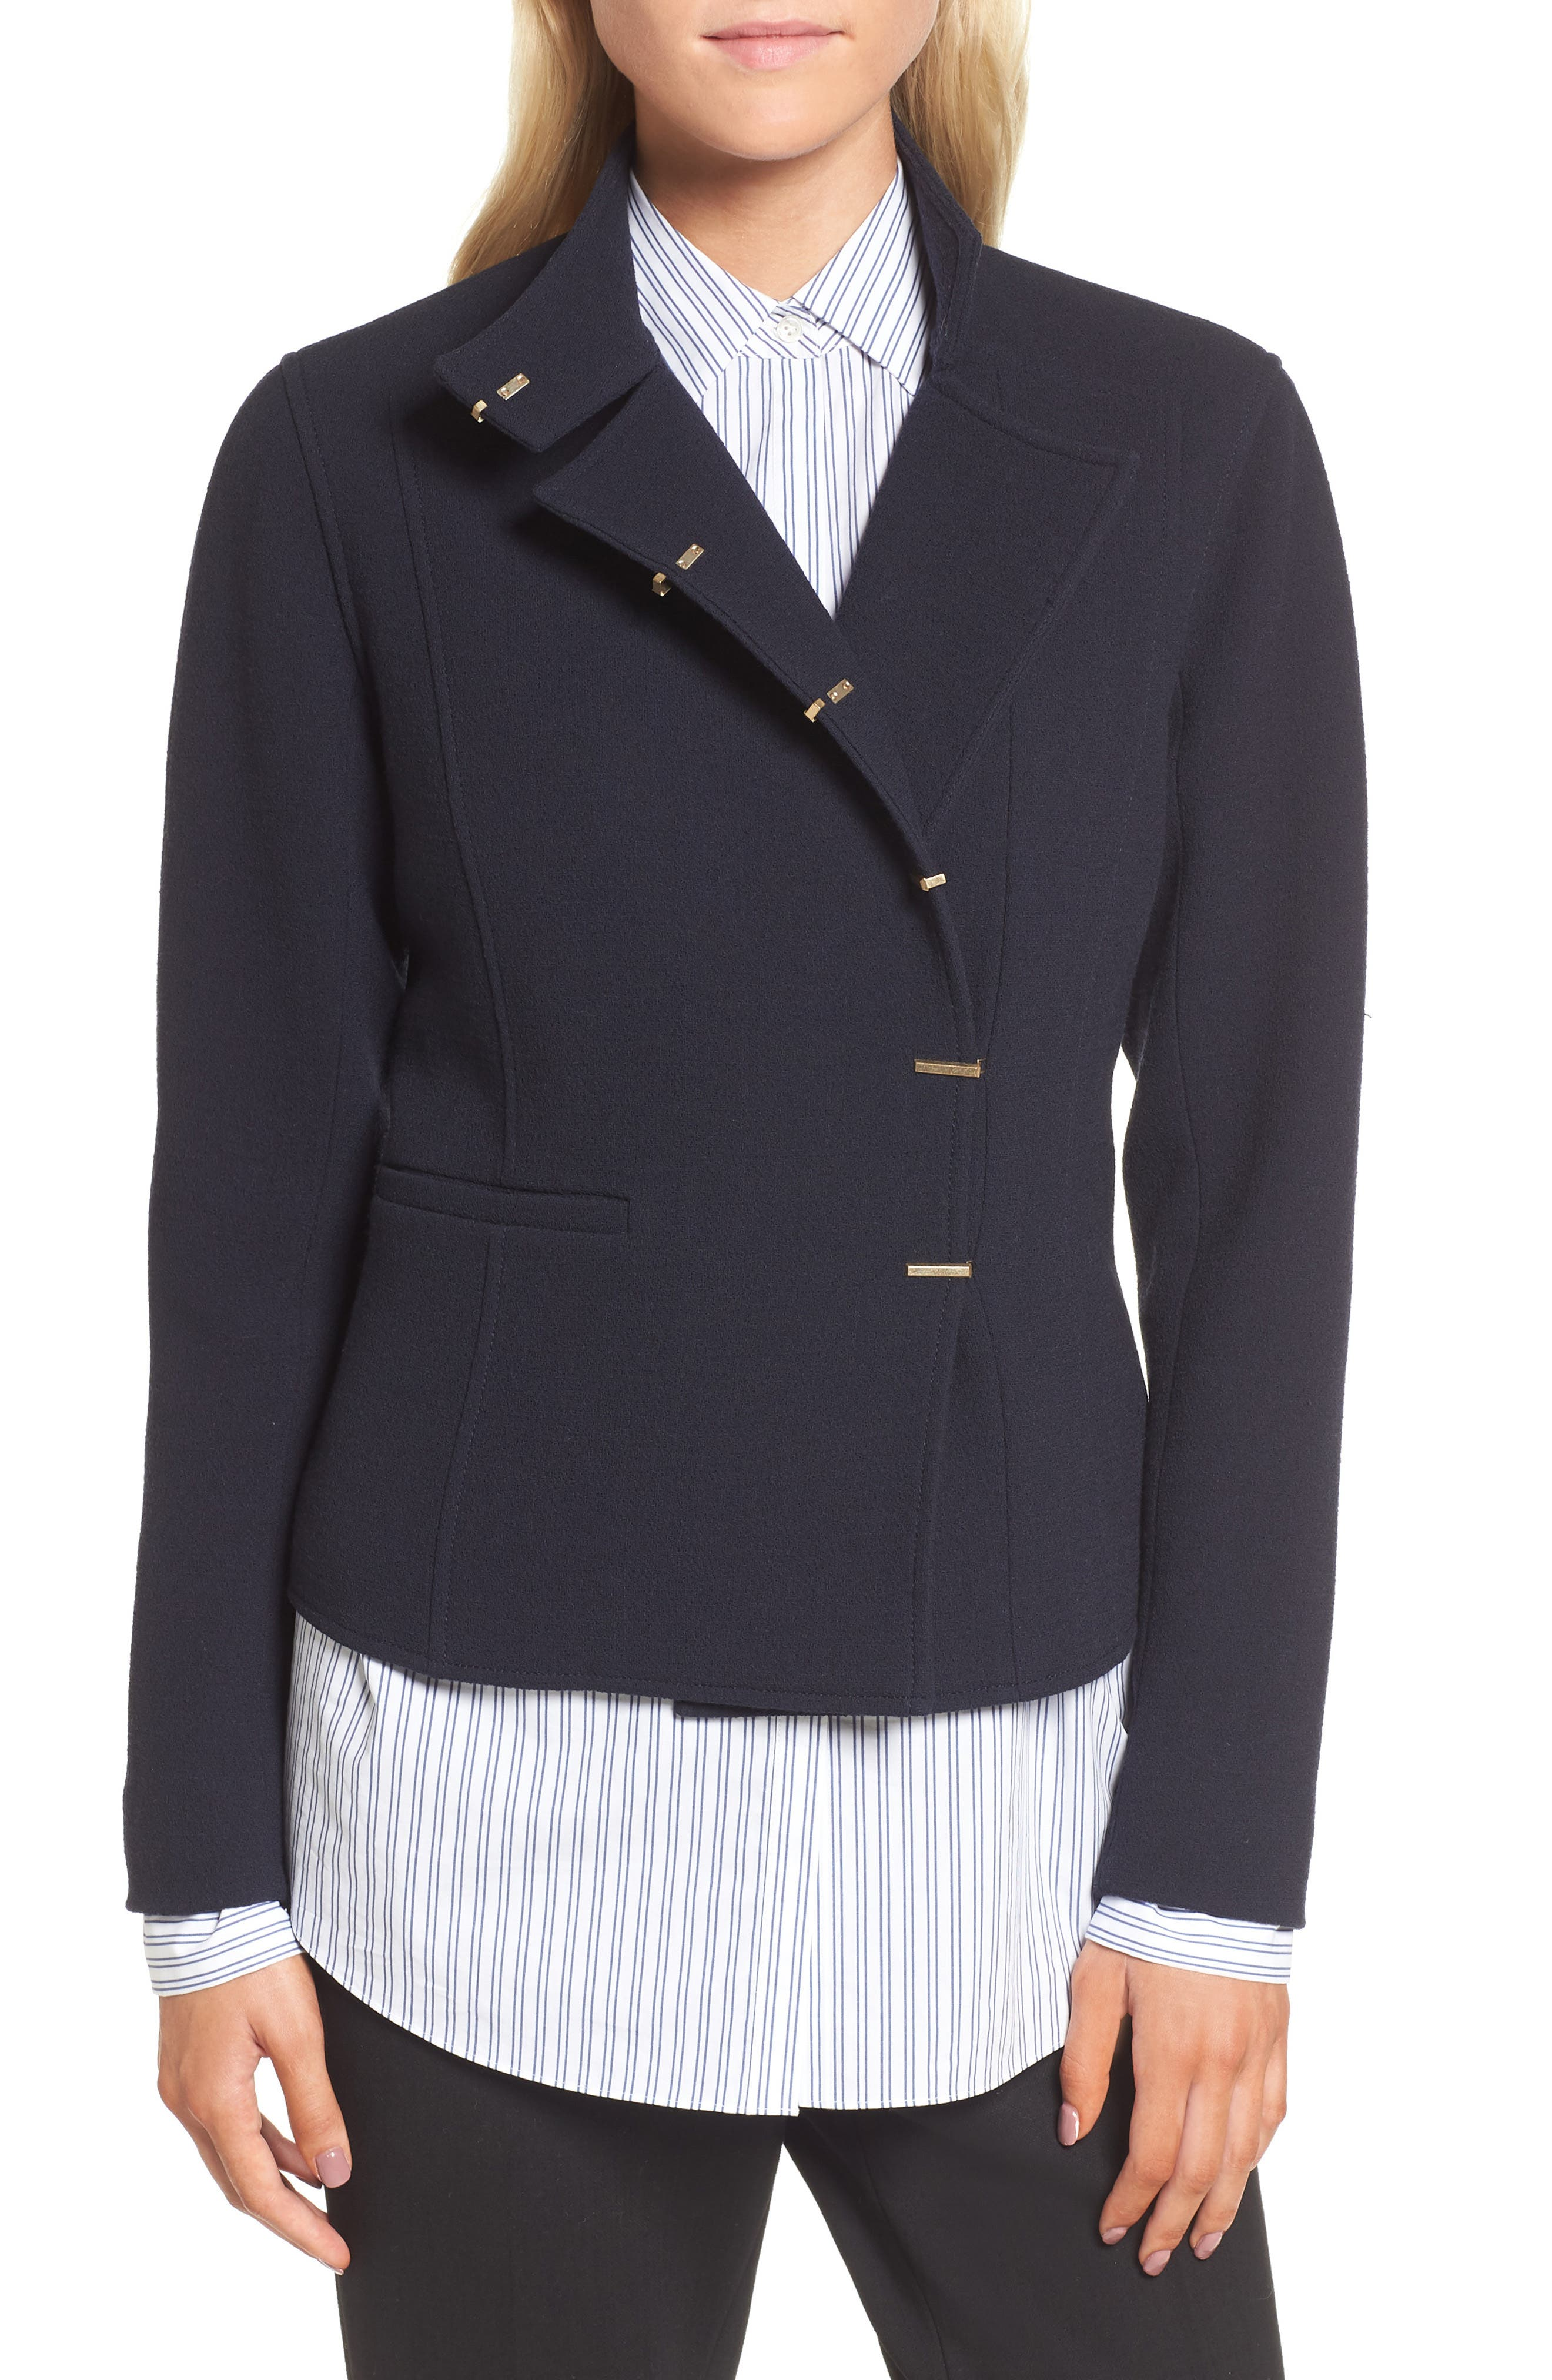 Alternate Image 1 Selected - Lewit Fitted Wool Jacket